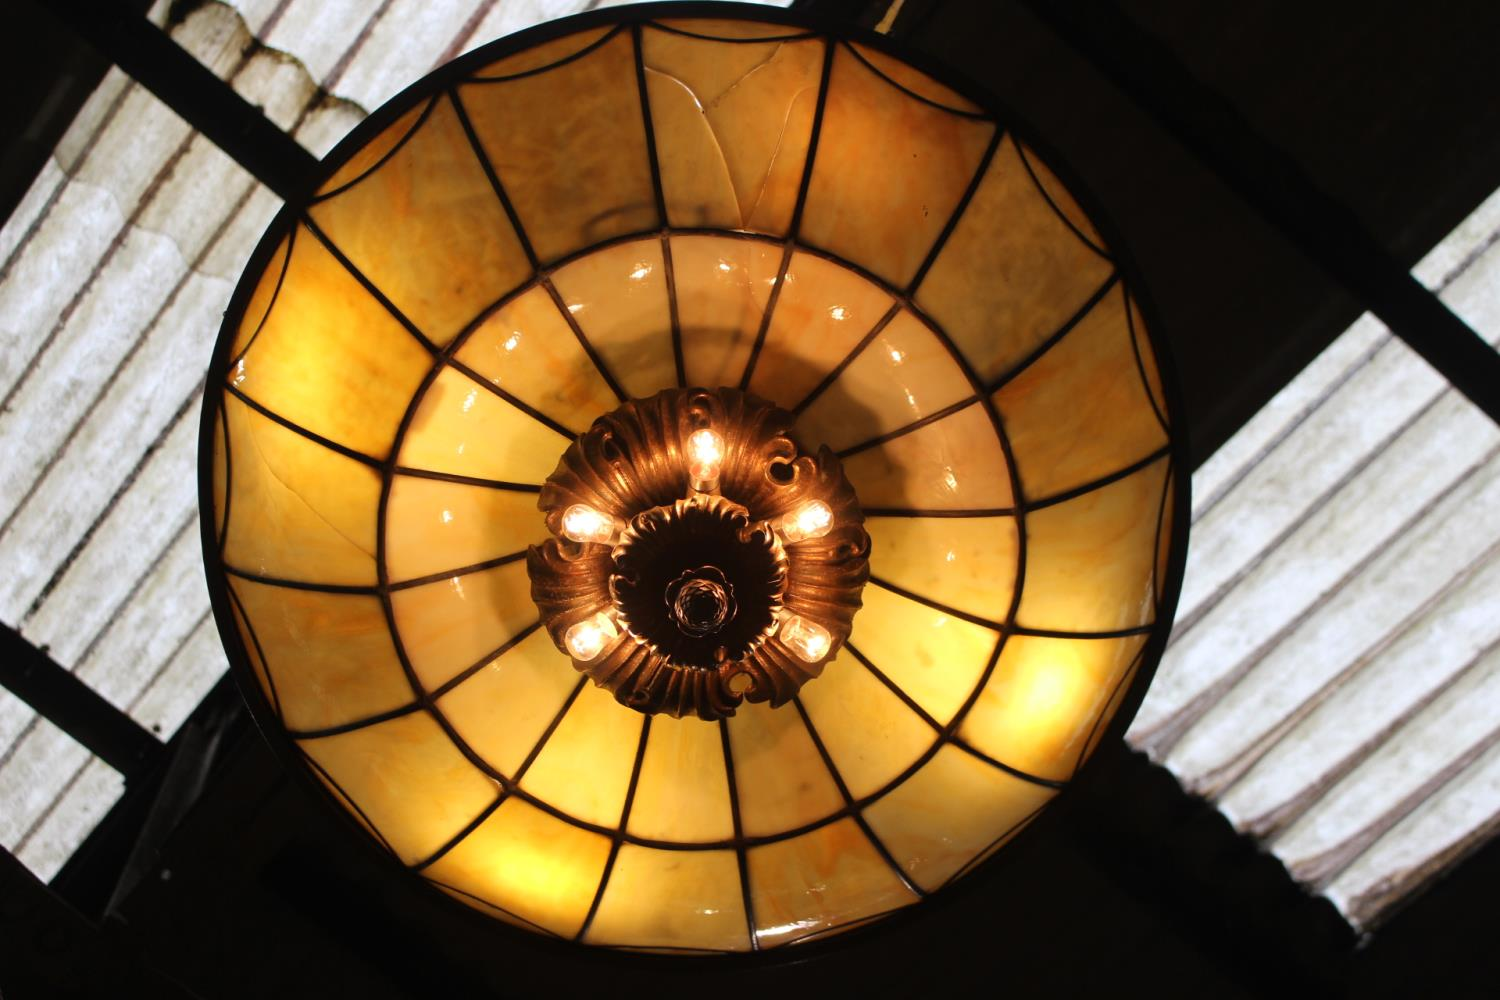 Bronze hanging ceiling light - Image 2 of 2